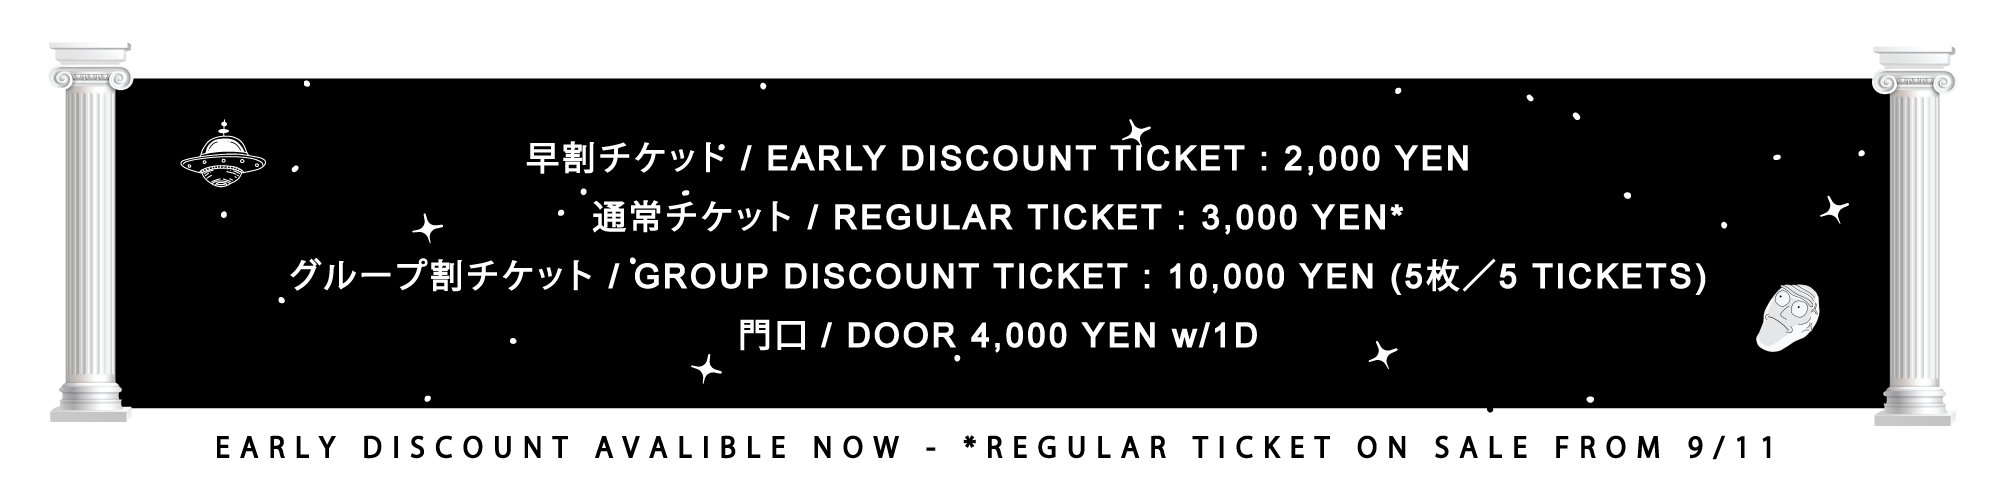 TICKET-PRICE-BANNER-LOOPY-MOUNTAIN-NOTICE.png